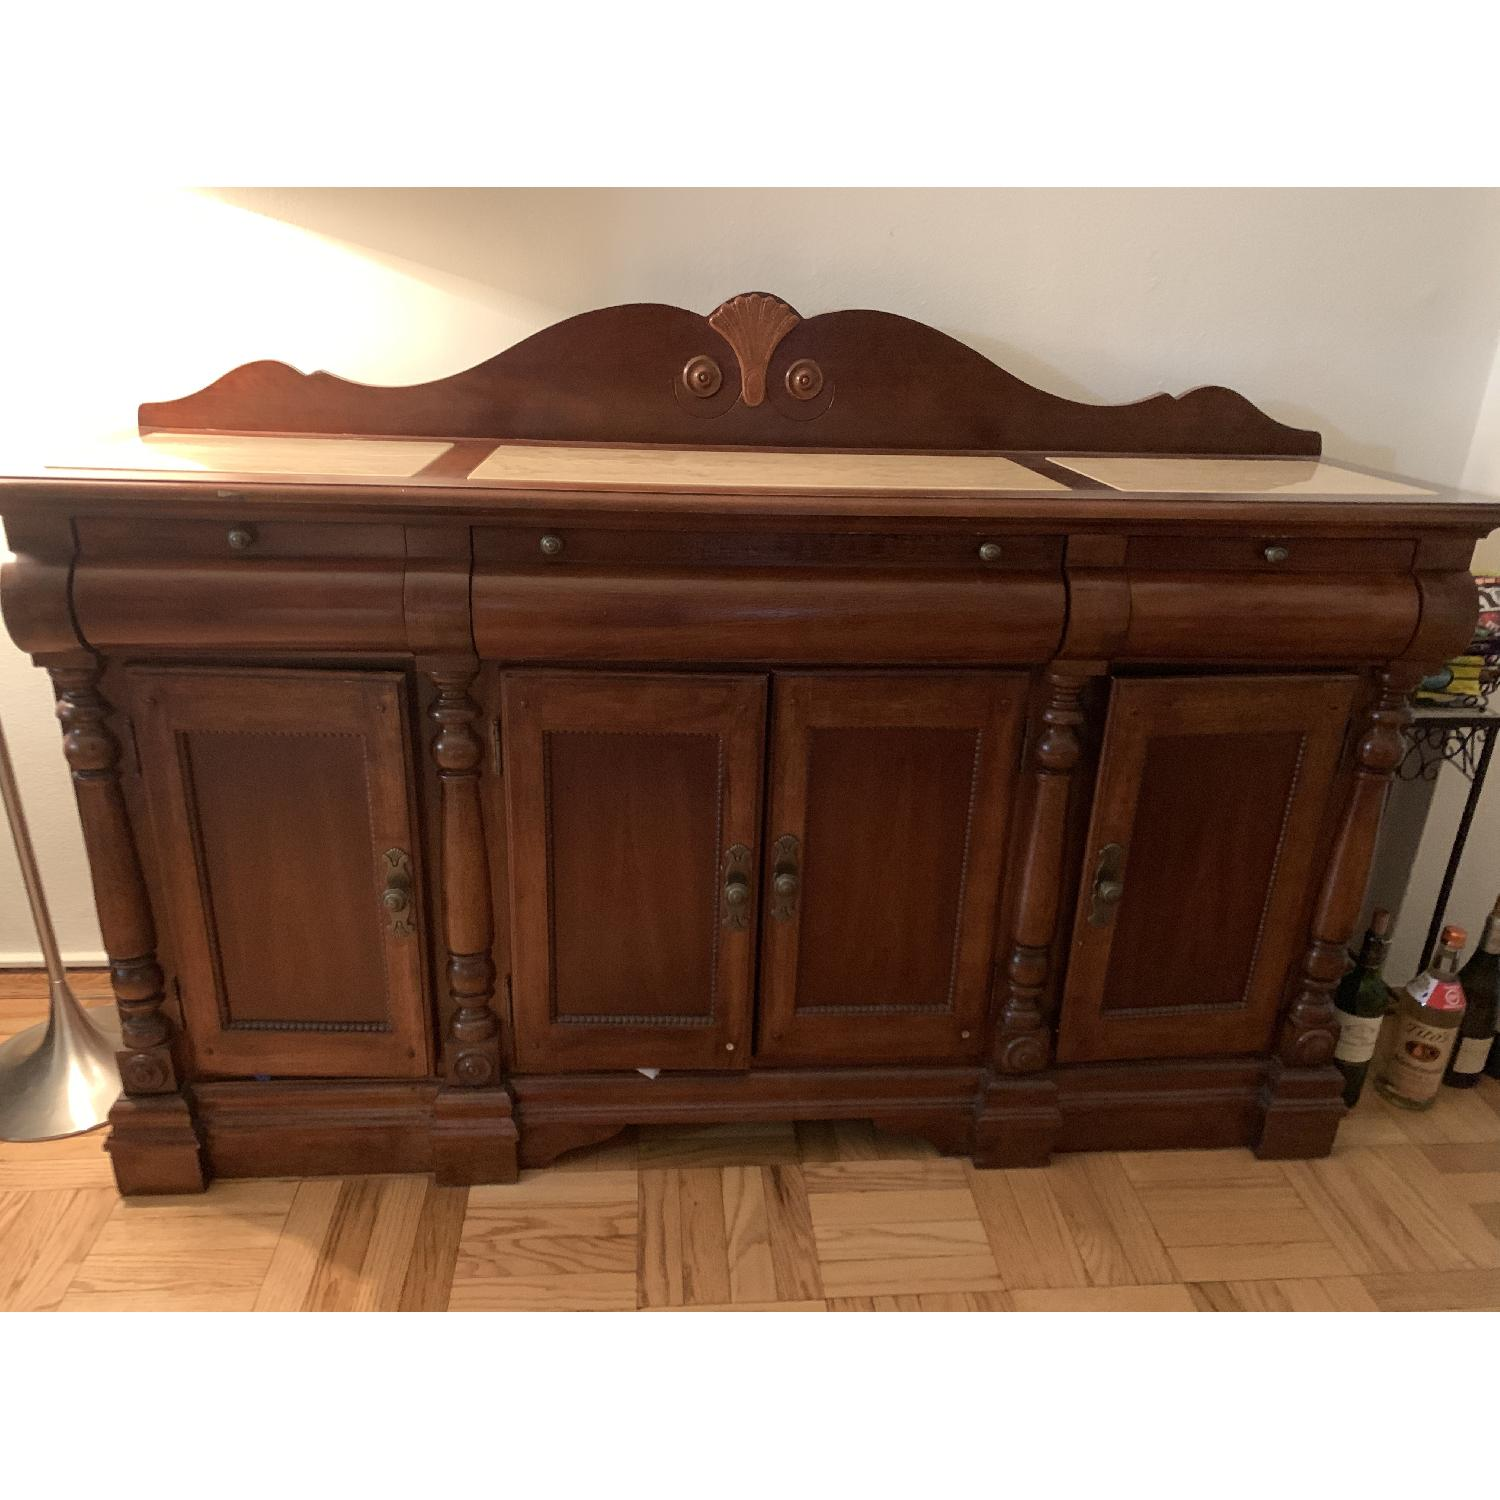 Thomasville Sideboard w/ Marble Top - image-2